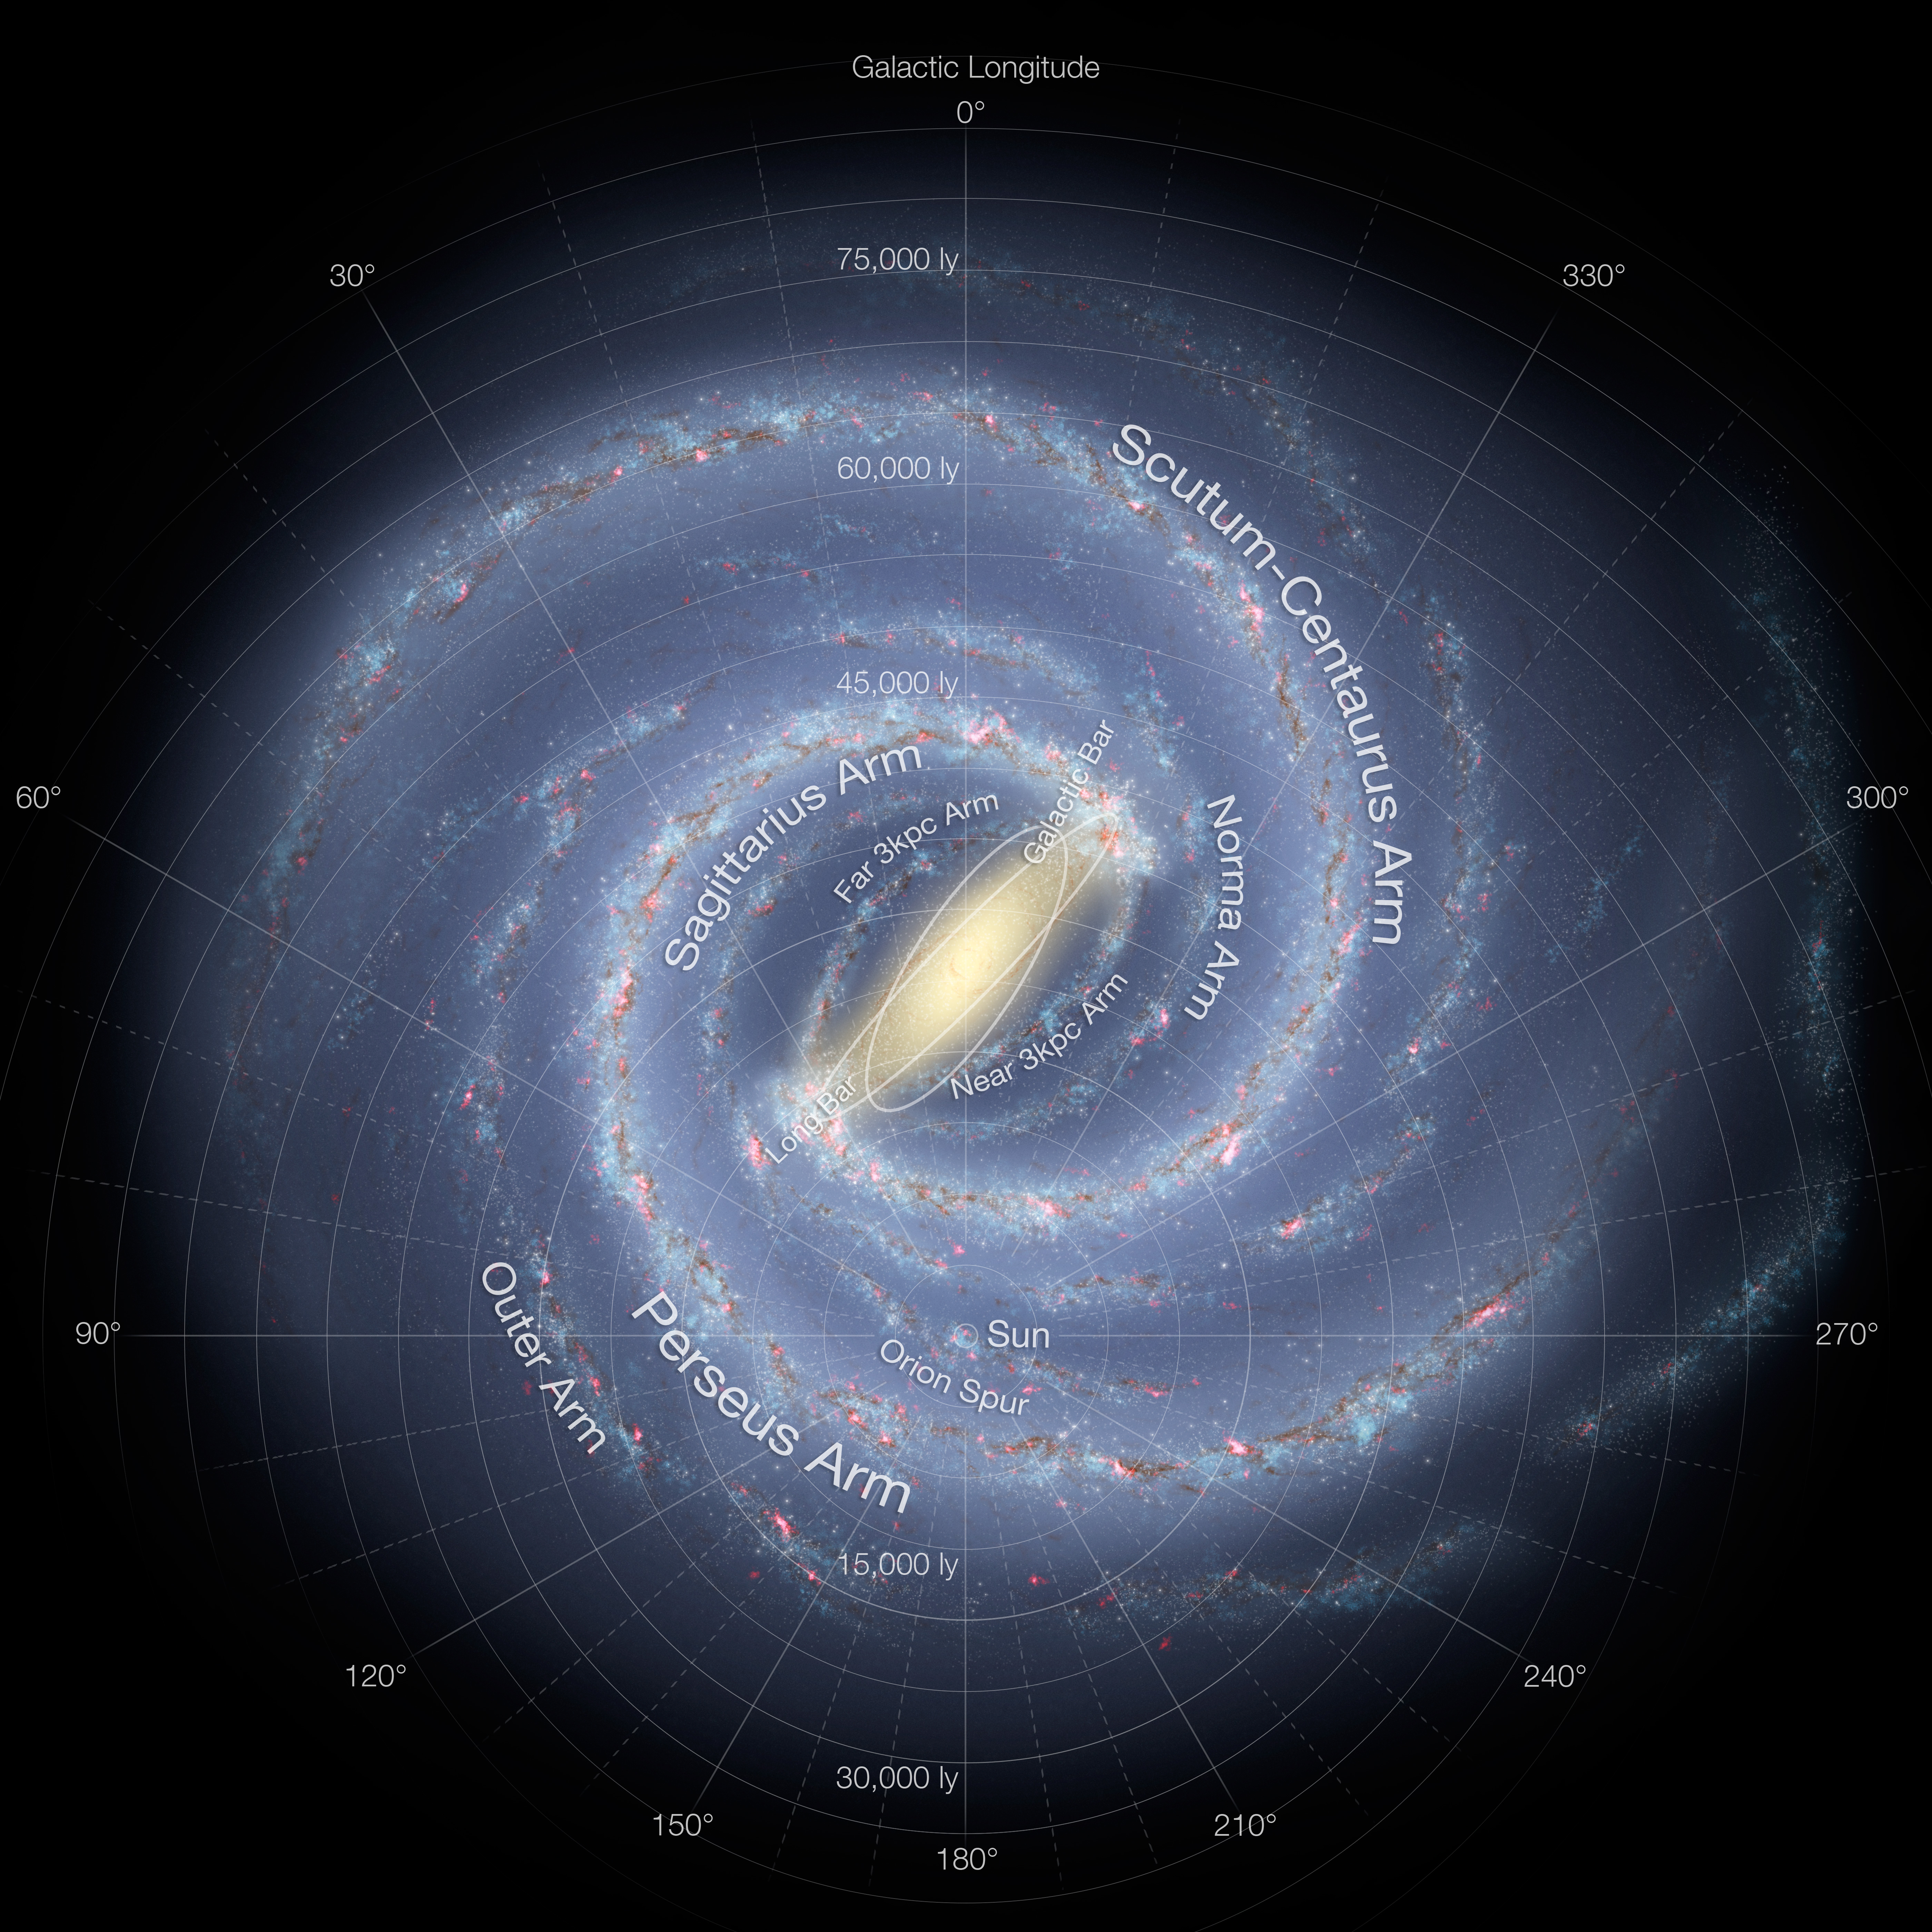 Artist's_impression_of_the_Milky_Way_(updated_-_annotated)